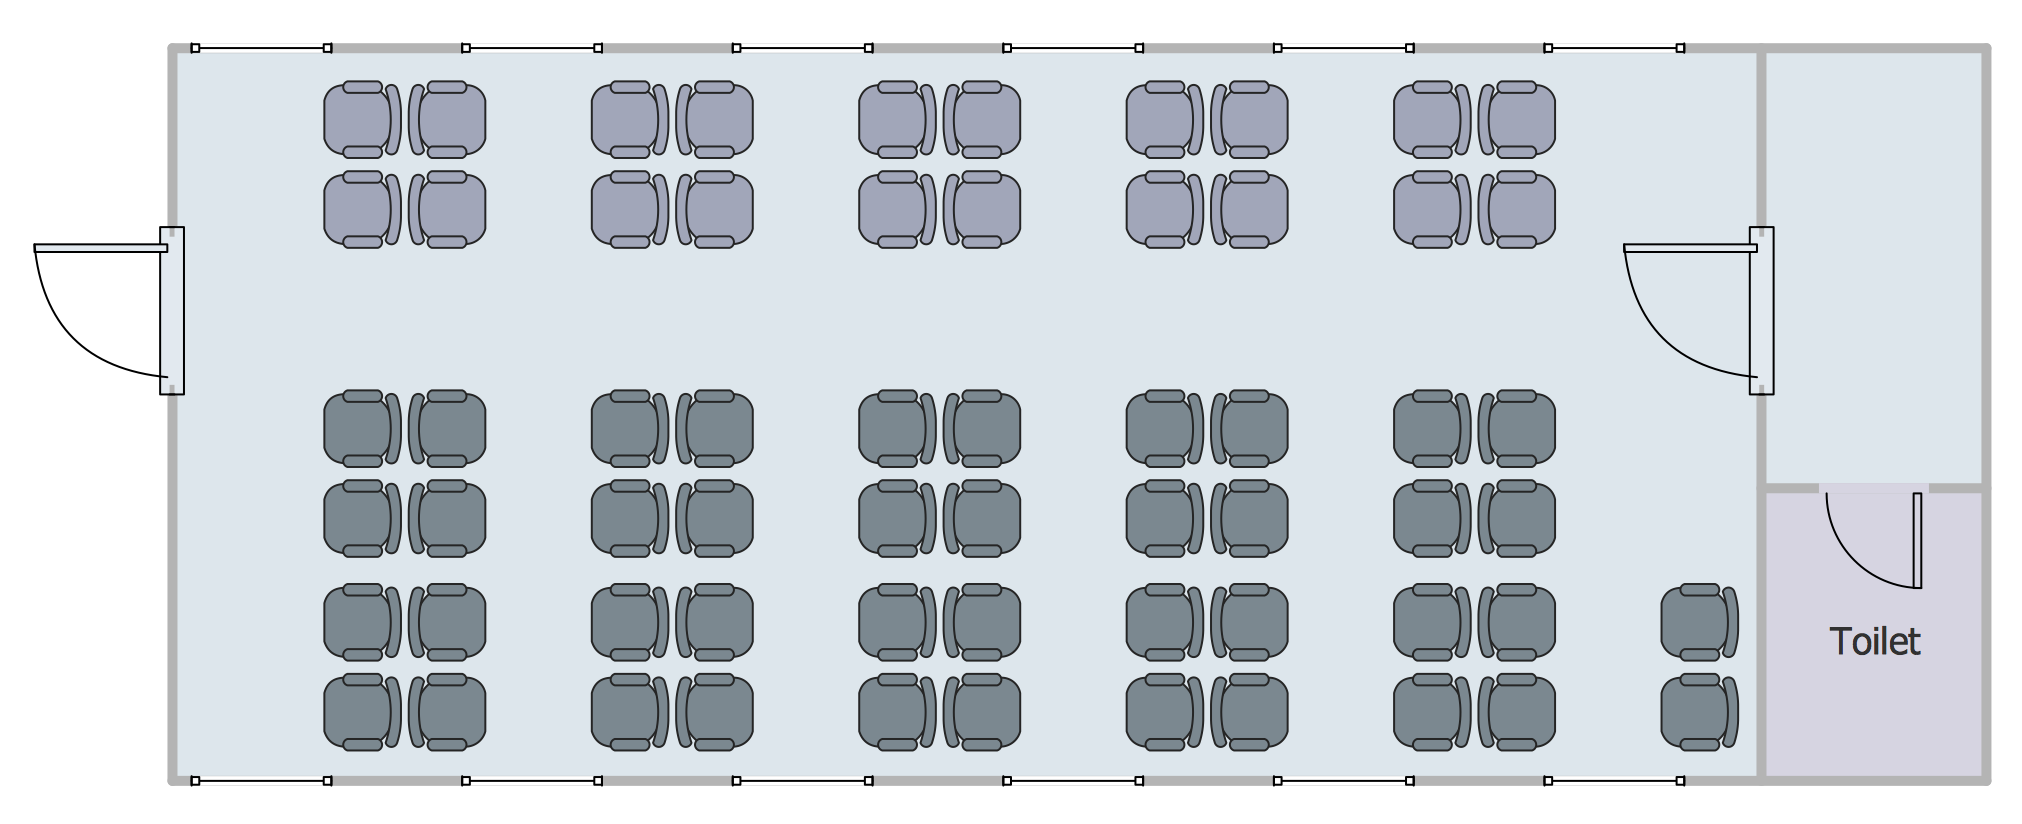 Seating Plans Solution | ConceptDraw com